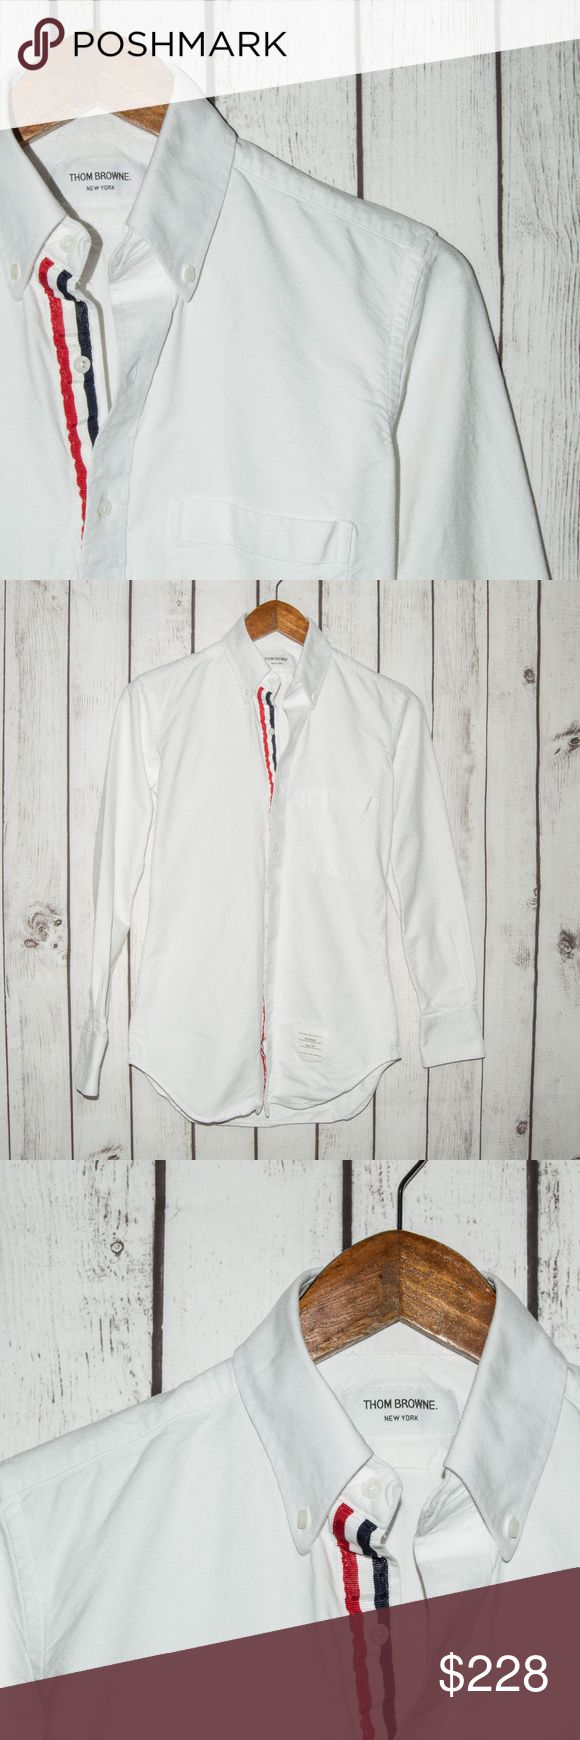 "THOM BROWNE  White Button Down Oxford Shirt THOM BROWNE Men's White Button Down Oxford Shirt Blue Red Stripe Size 0 USA Made  Size:  0  (Please SEE measurements)  Shoulder to Shoulder:16""  Chest (armpit to armpit): 18""  Length :27""  Sleeves:22.5""  Condition: Great overall Condition.  Color(s):White  Item #17110835 Thom Browne Shirts Casual Button Down Shirts"